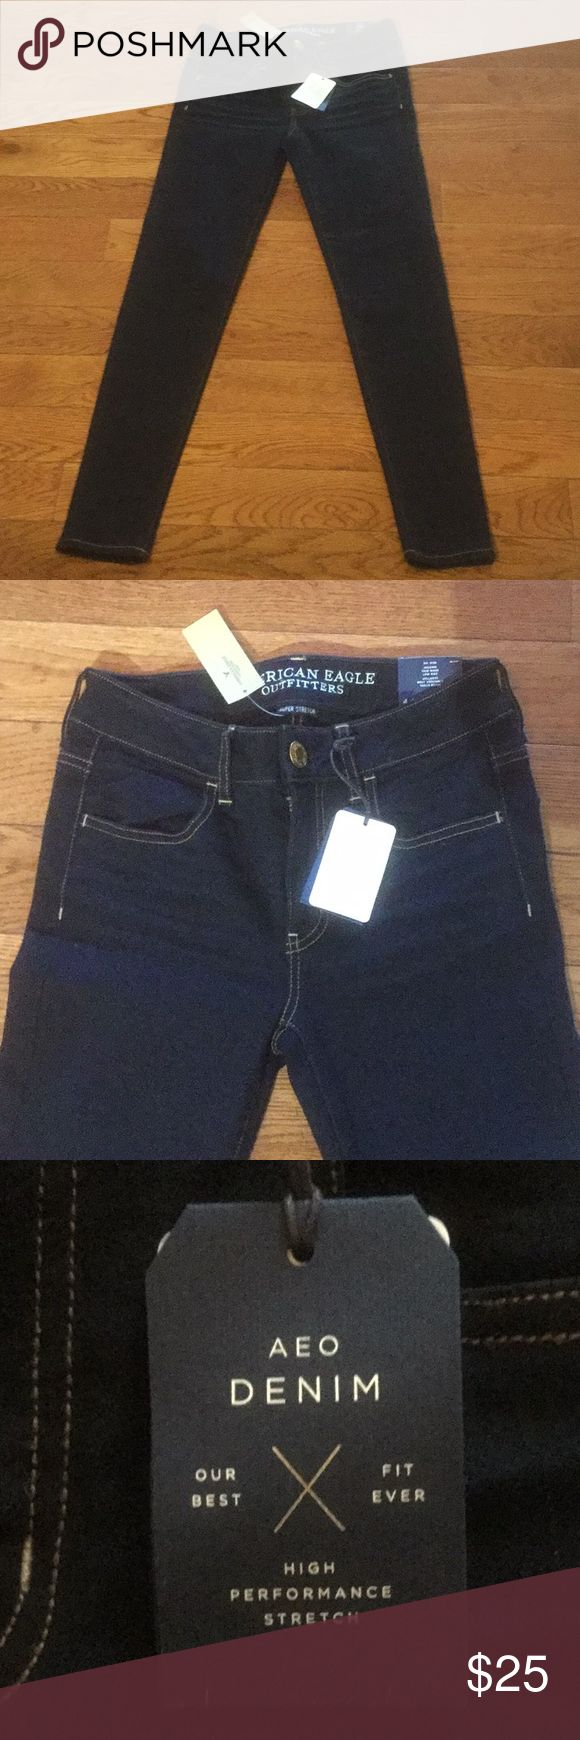 """American Eagle Denim Leggins New size 4 Leggins. Measurements taken laying flat: waist - 14"""", rise -10"""", inseam - 29, leg opening - 5. Make me an offer American Eagle Outfitters Jeans"""